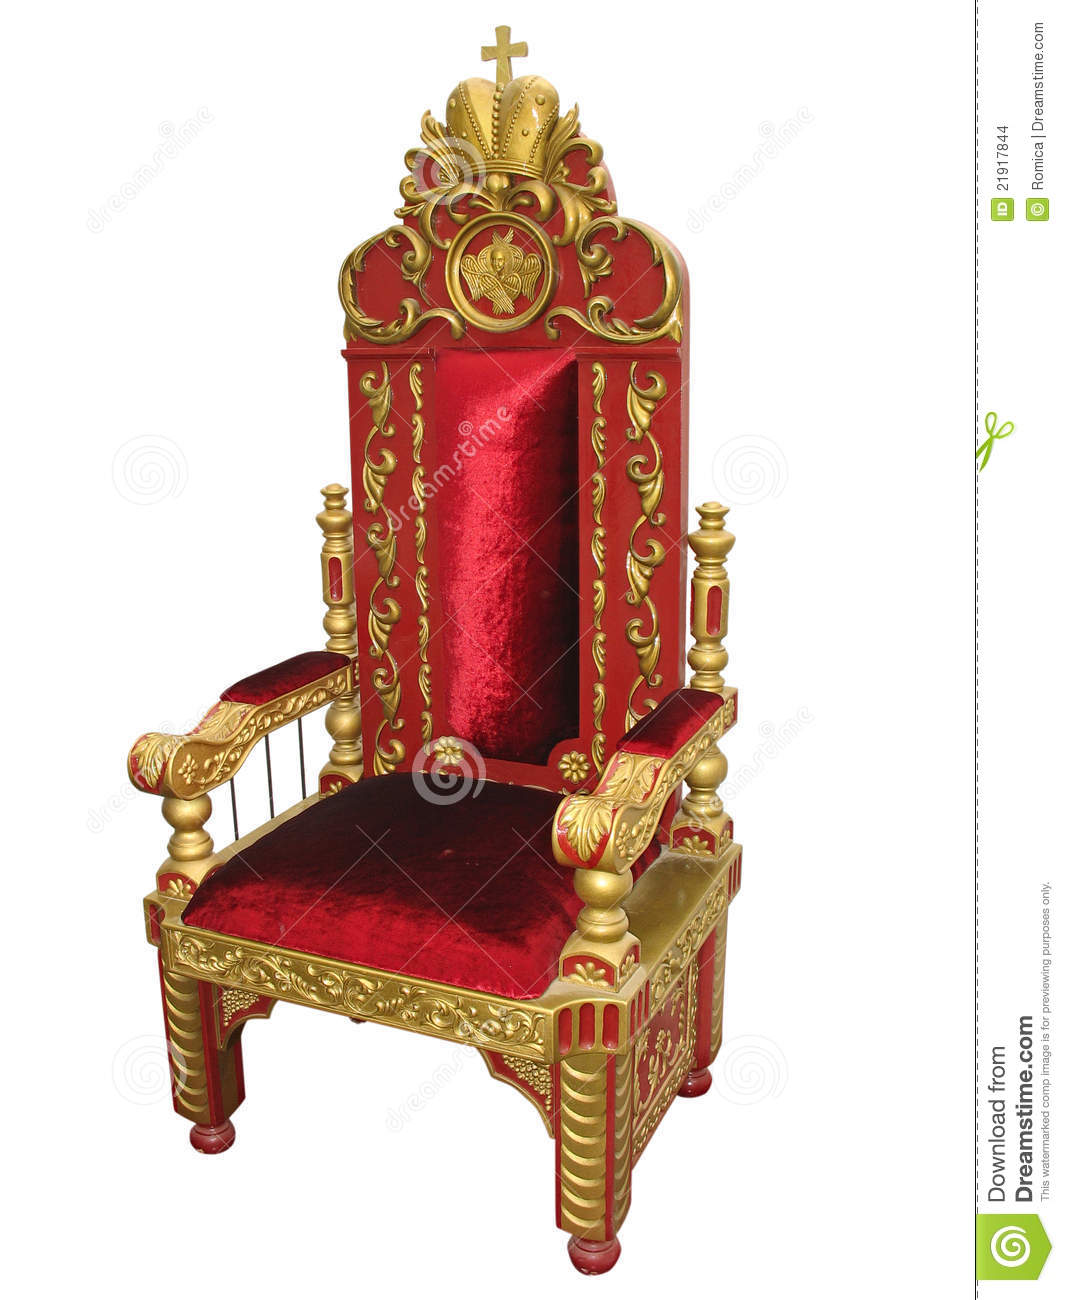 Royal King Red And Golden Throne Chair Isolated Stock Photo - Image: 21917844